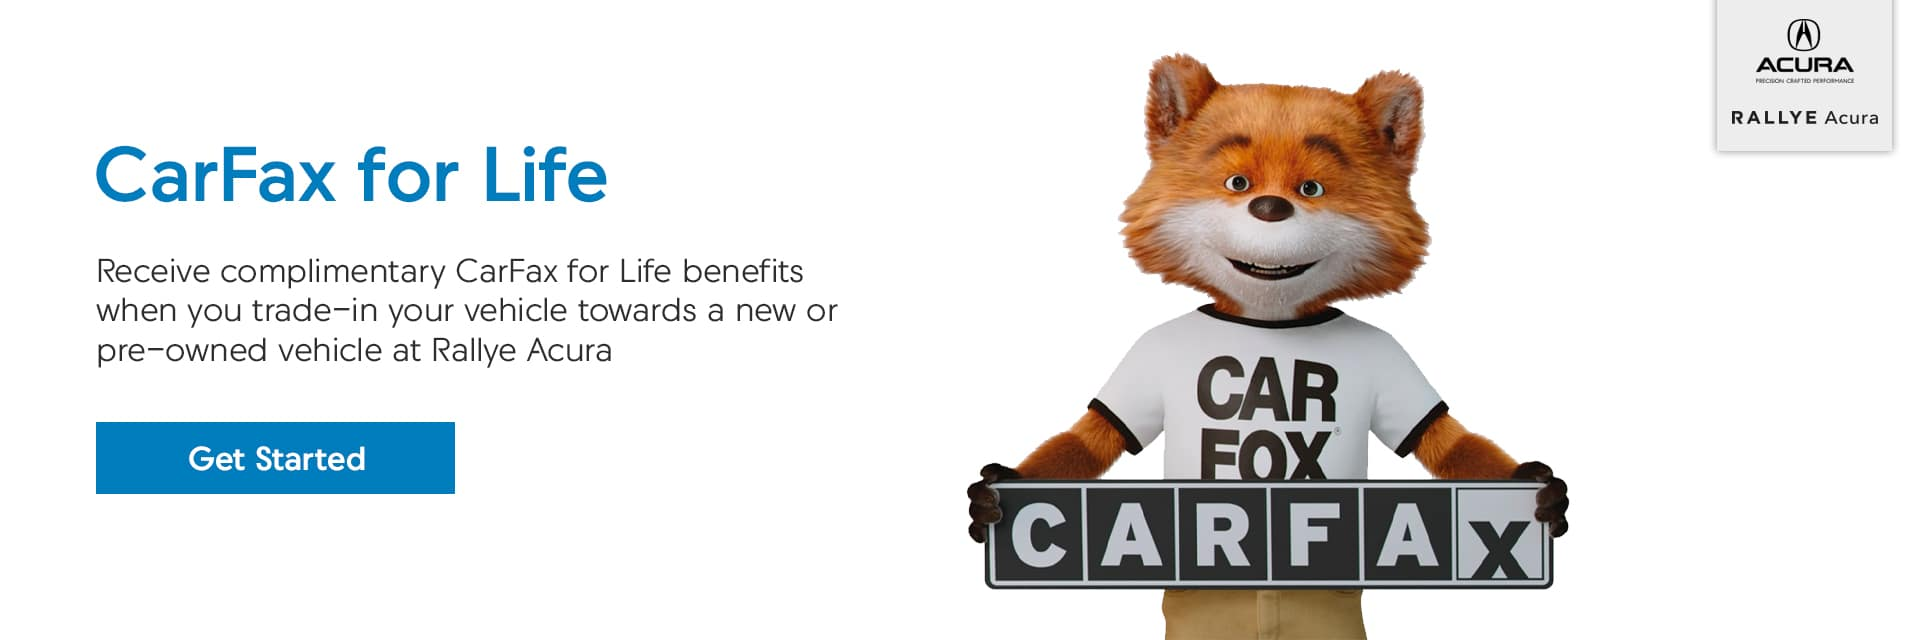 Carfax for life